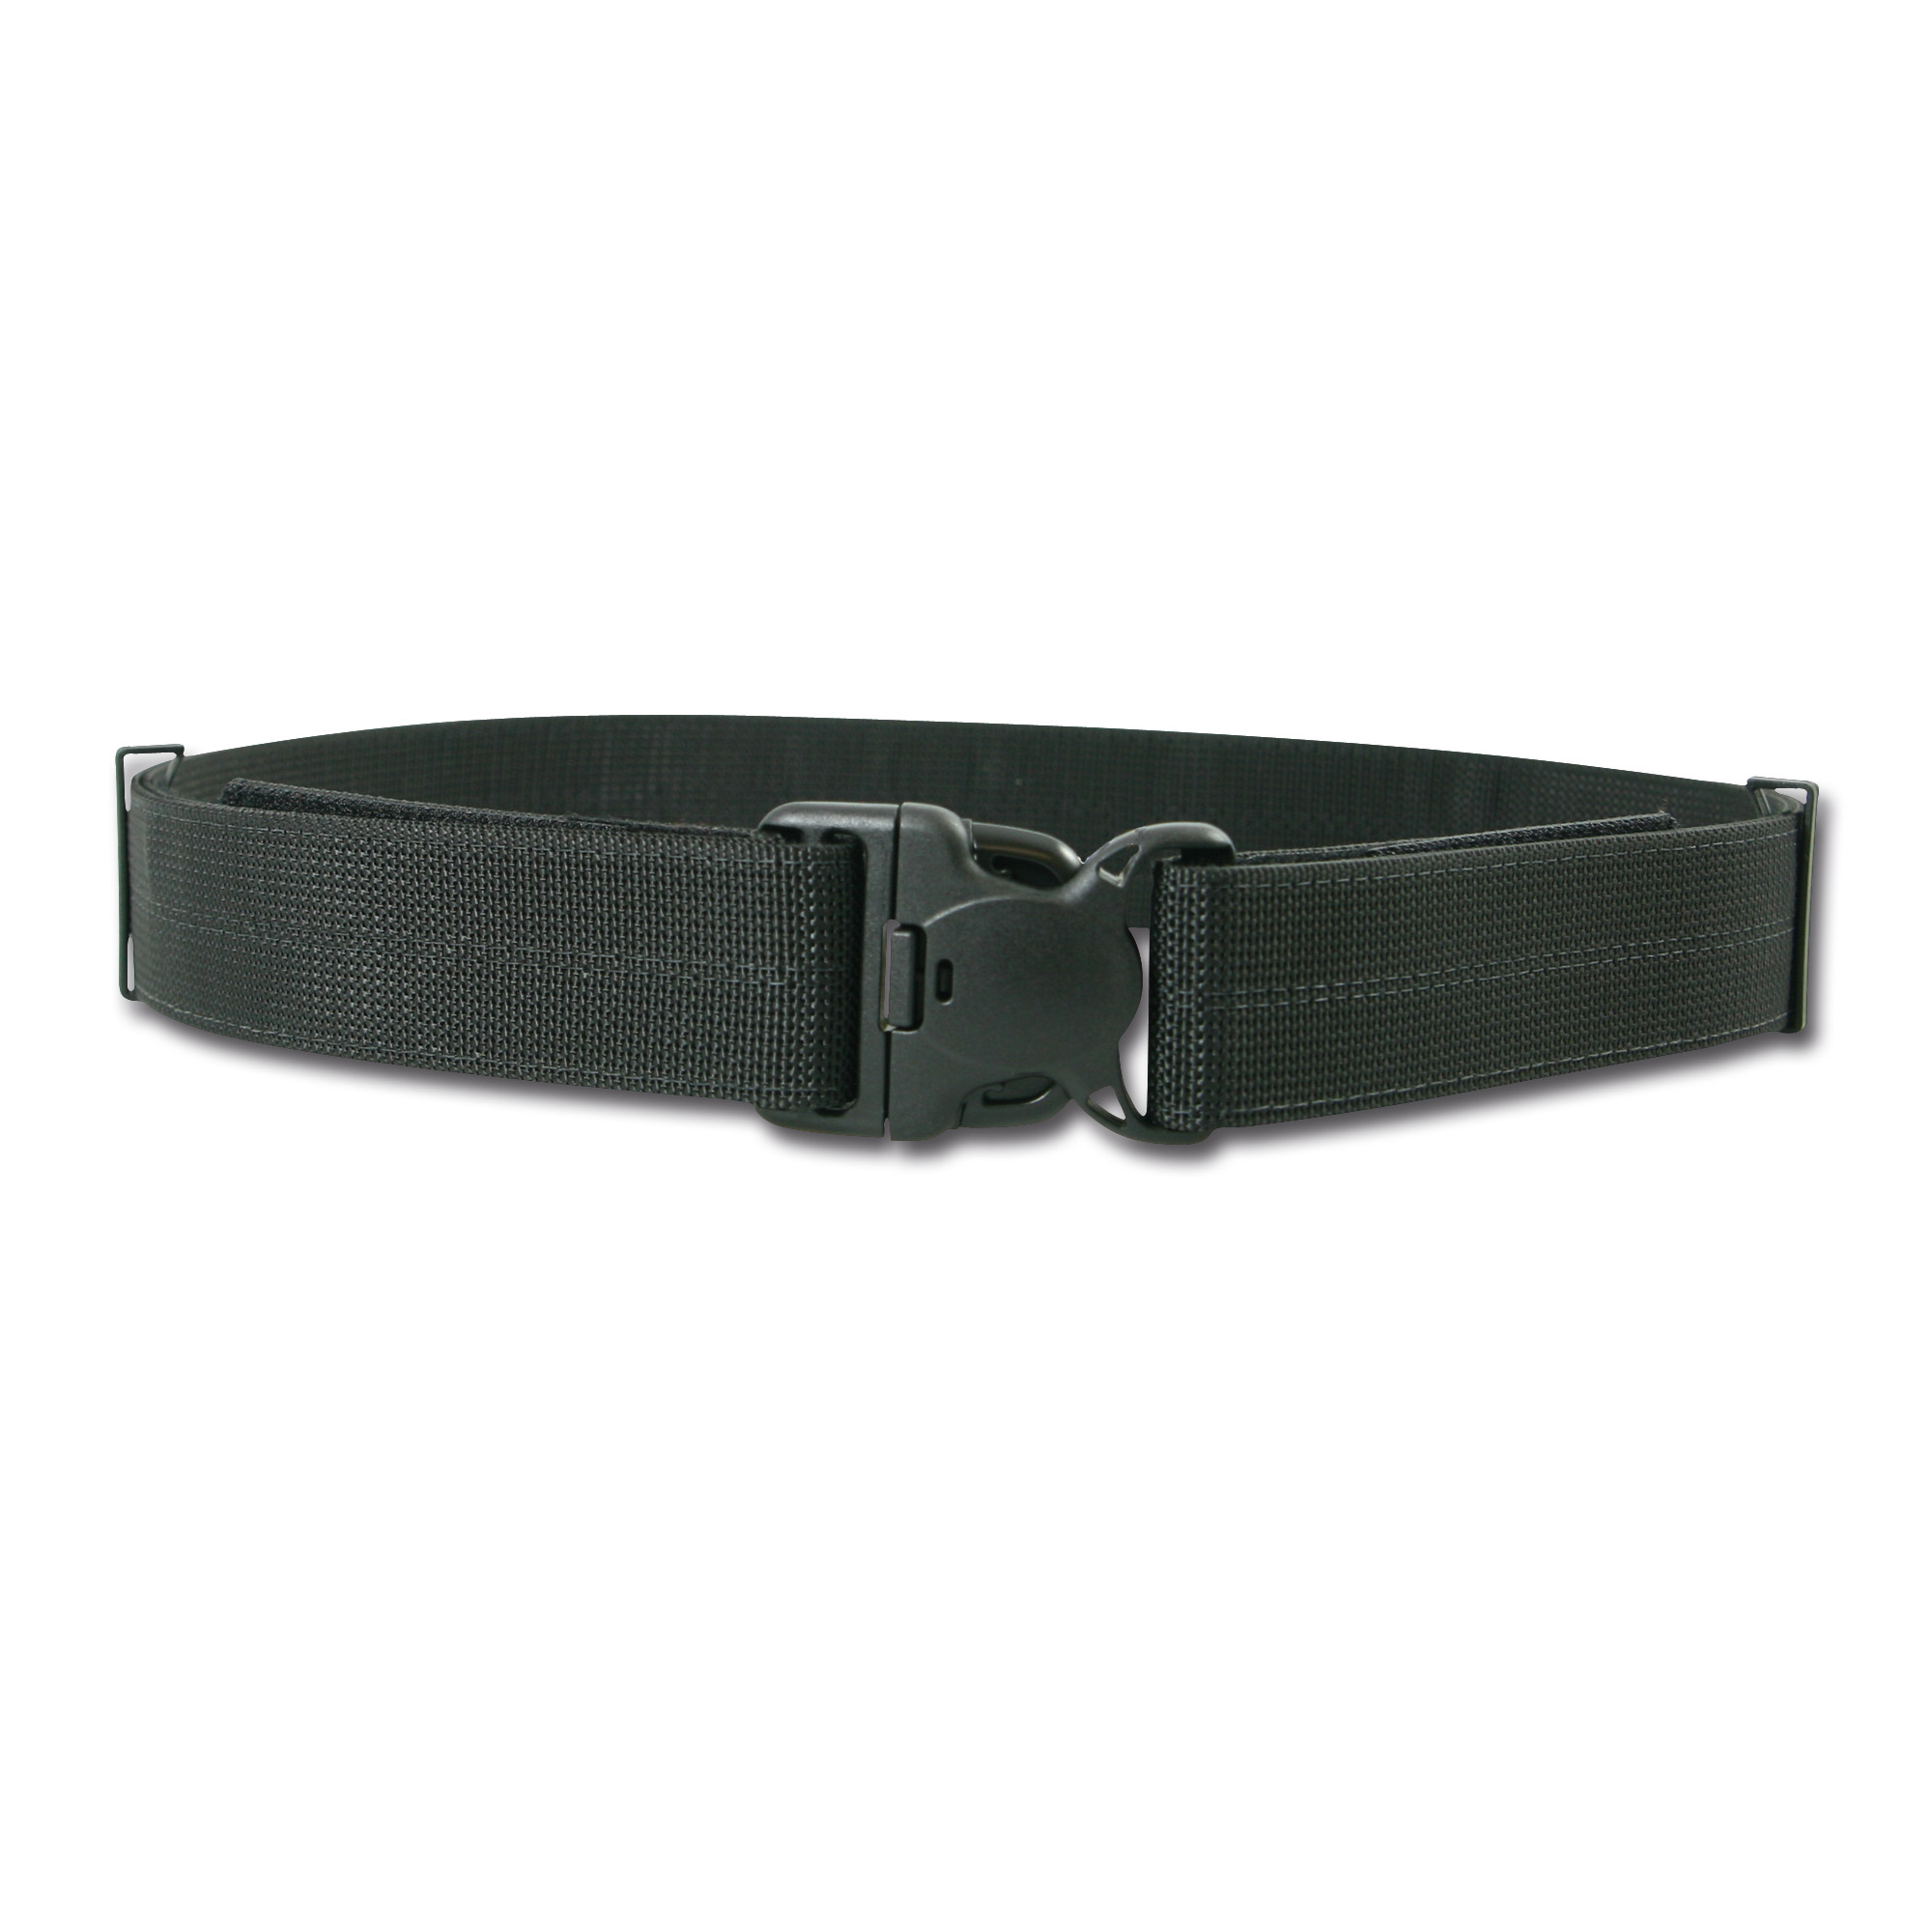 Blackhawk Web Duty Belt